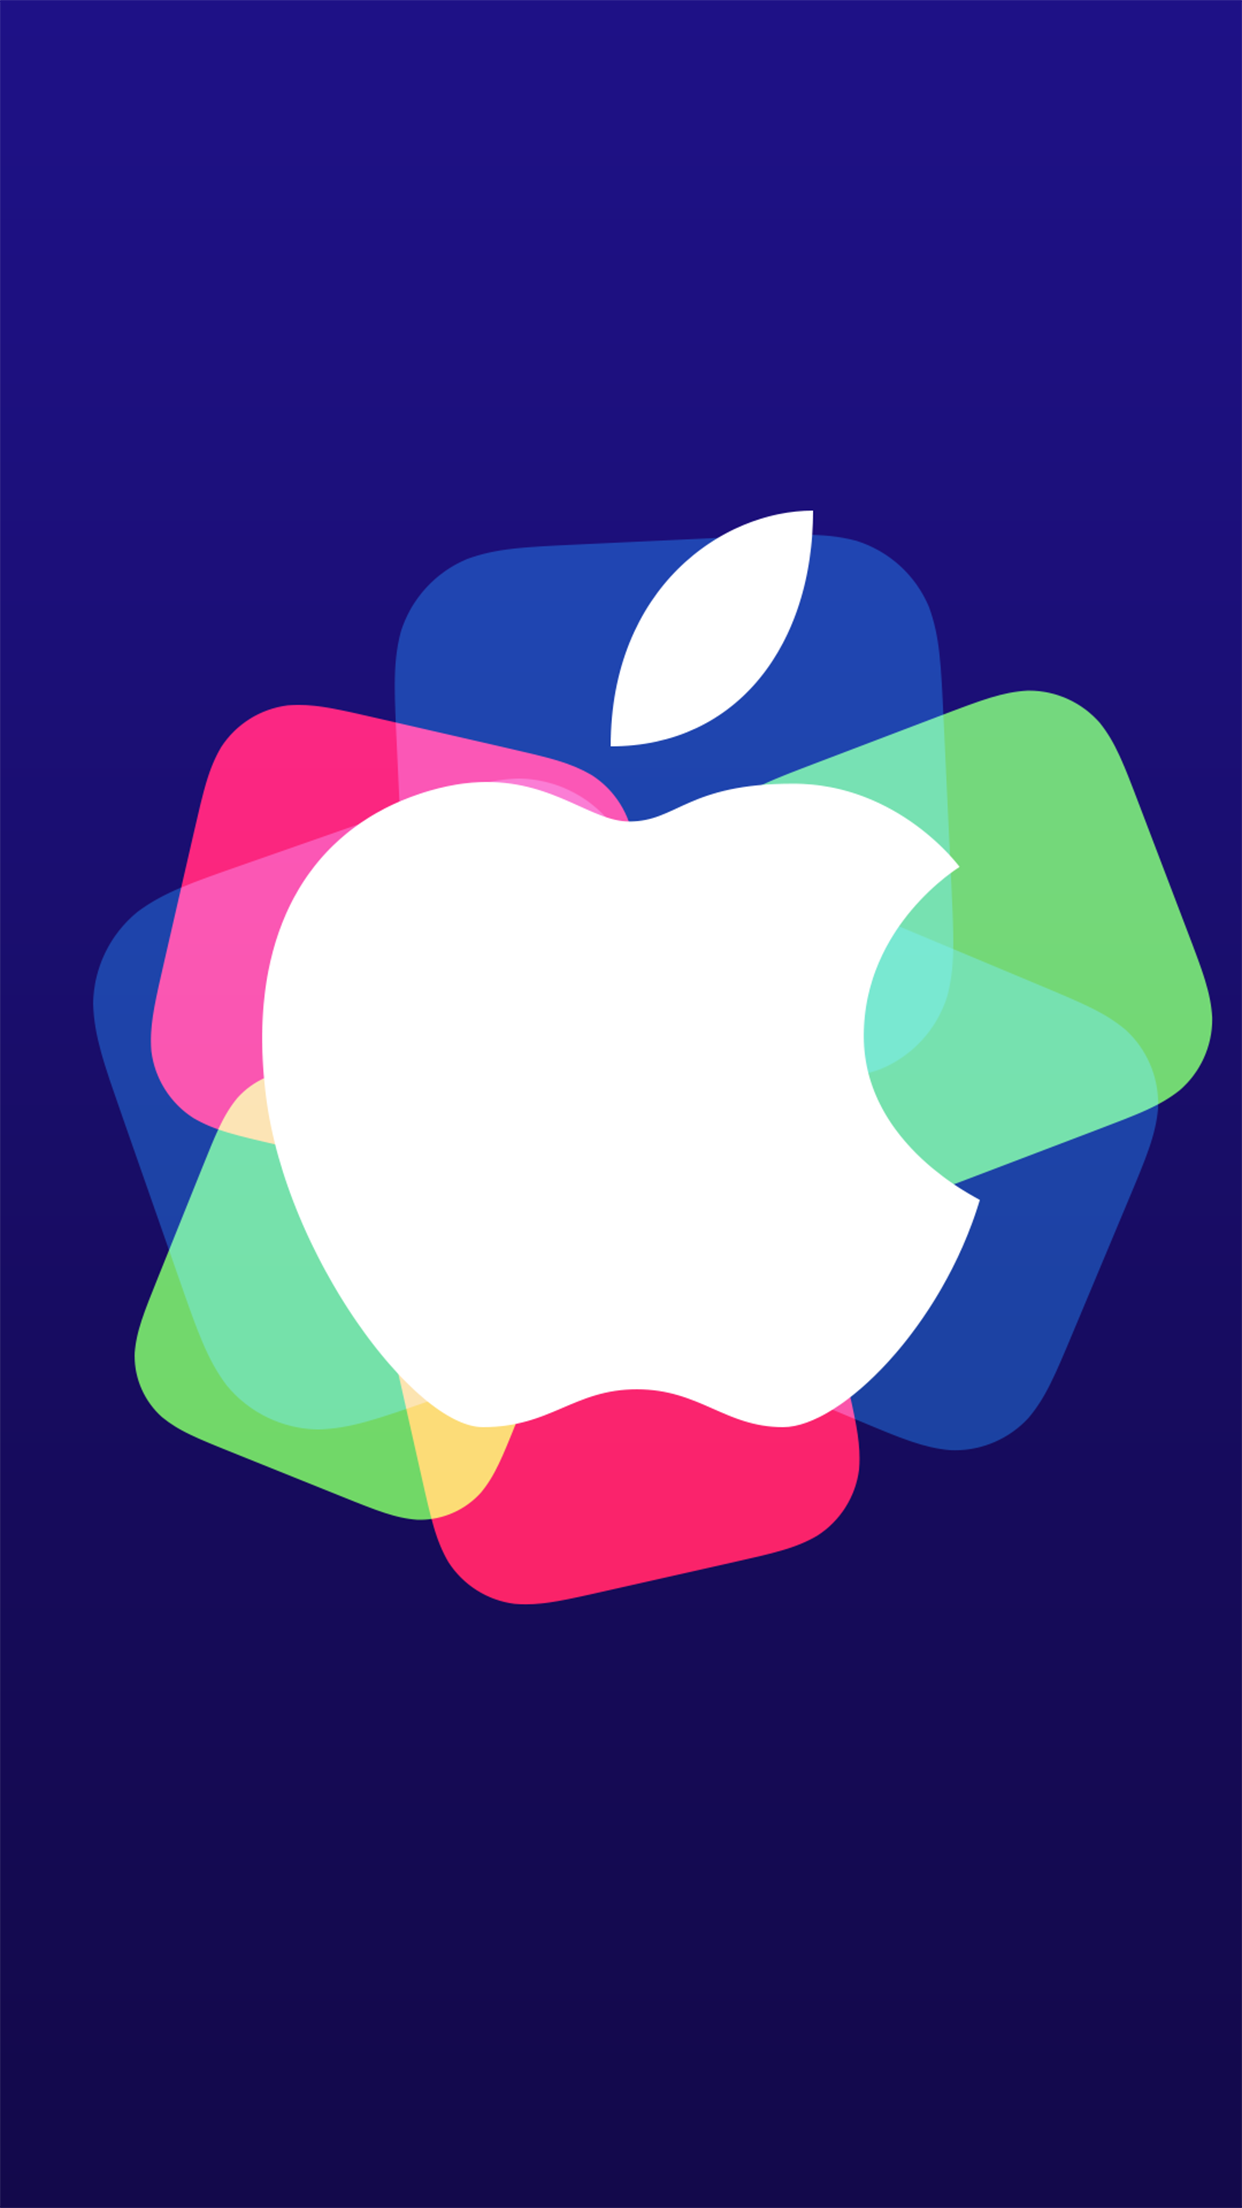 Apple Keynote 2015 3 3Wallpapers iPhone Parallax Apple Keynote 2015 (3)